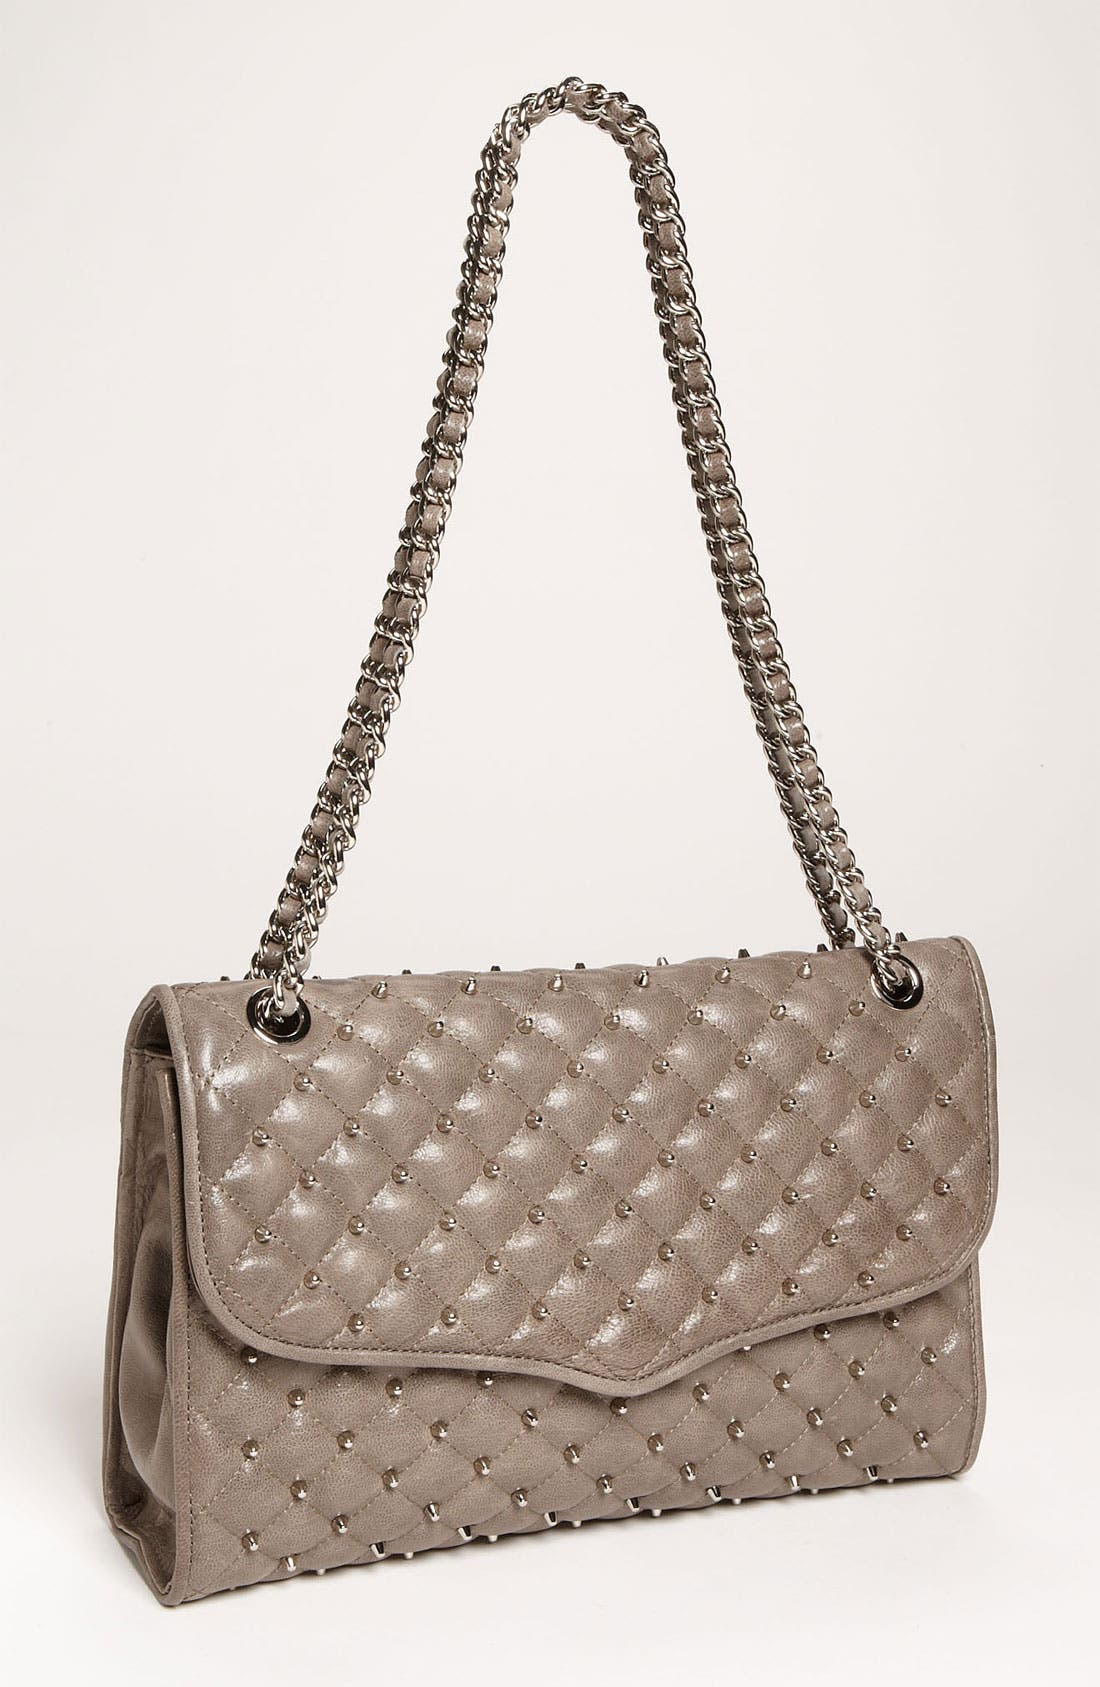 Alternate Image 1 Selected - Rebecca Minkoff 'Affair - Large' Double Chain Shoulder Bag